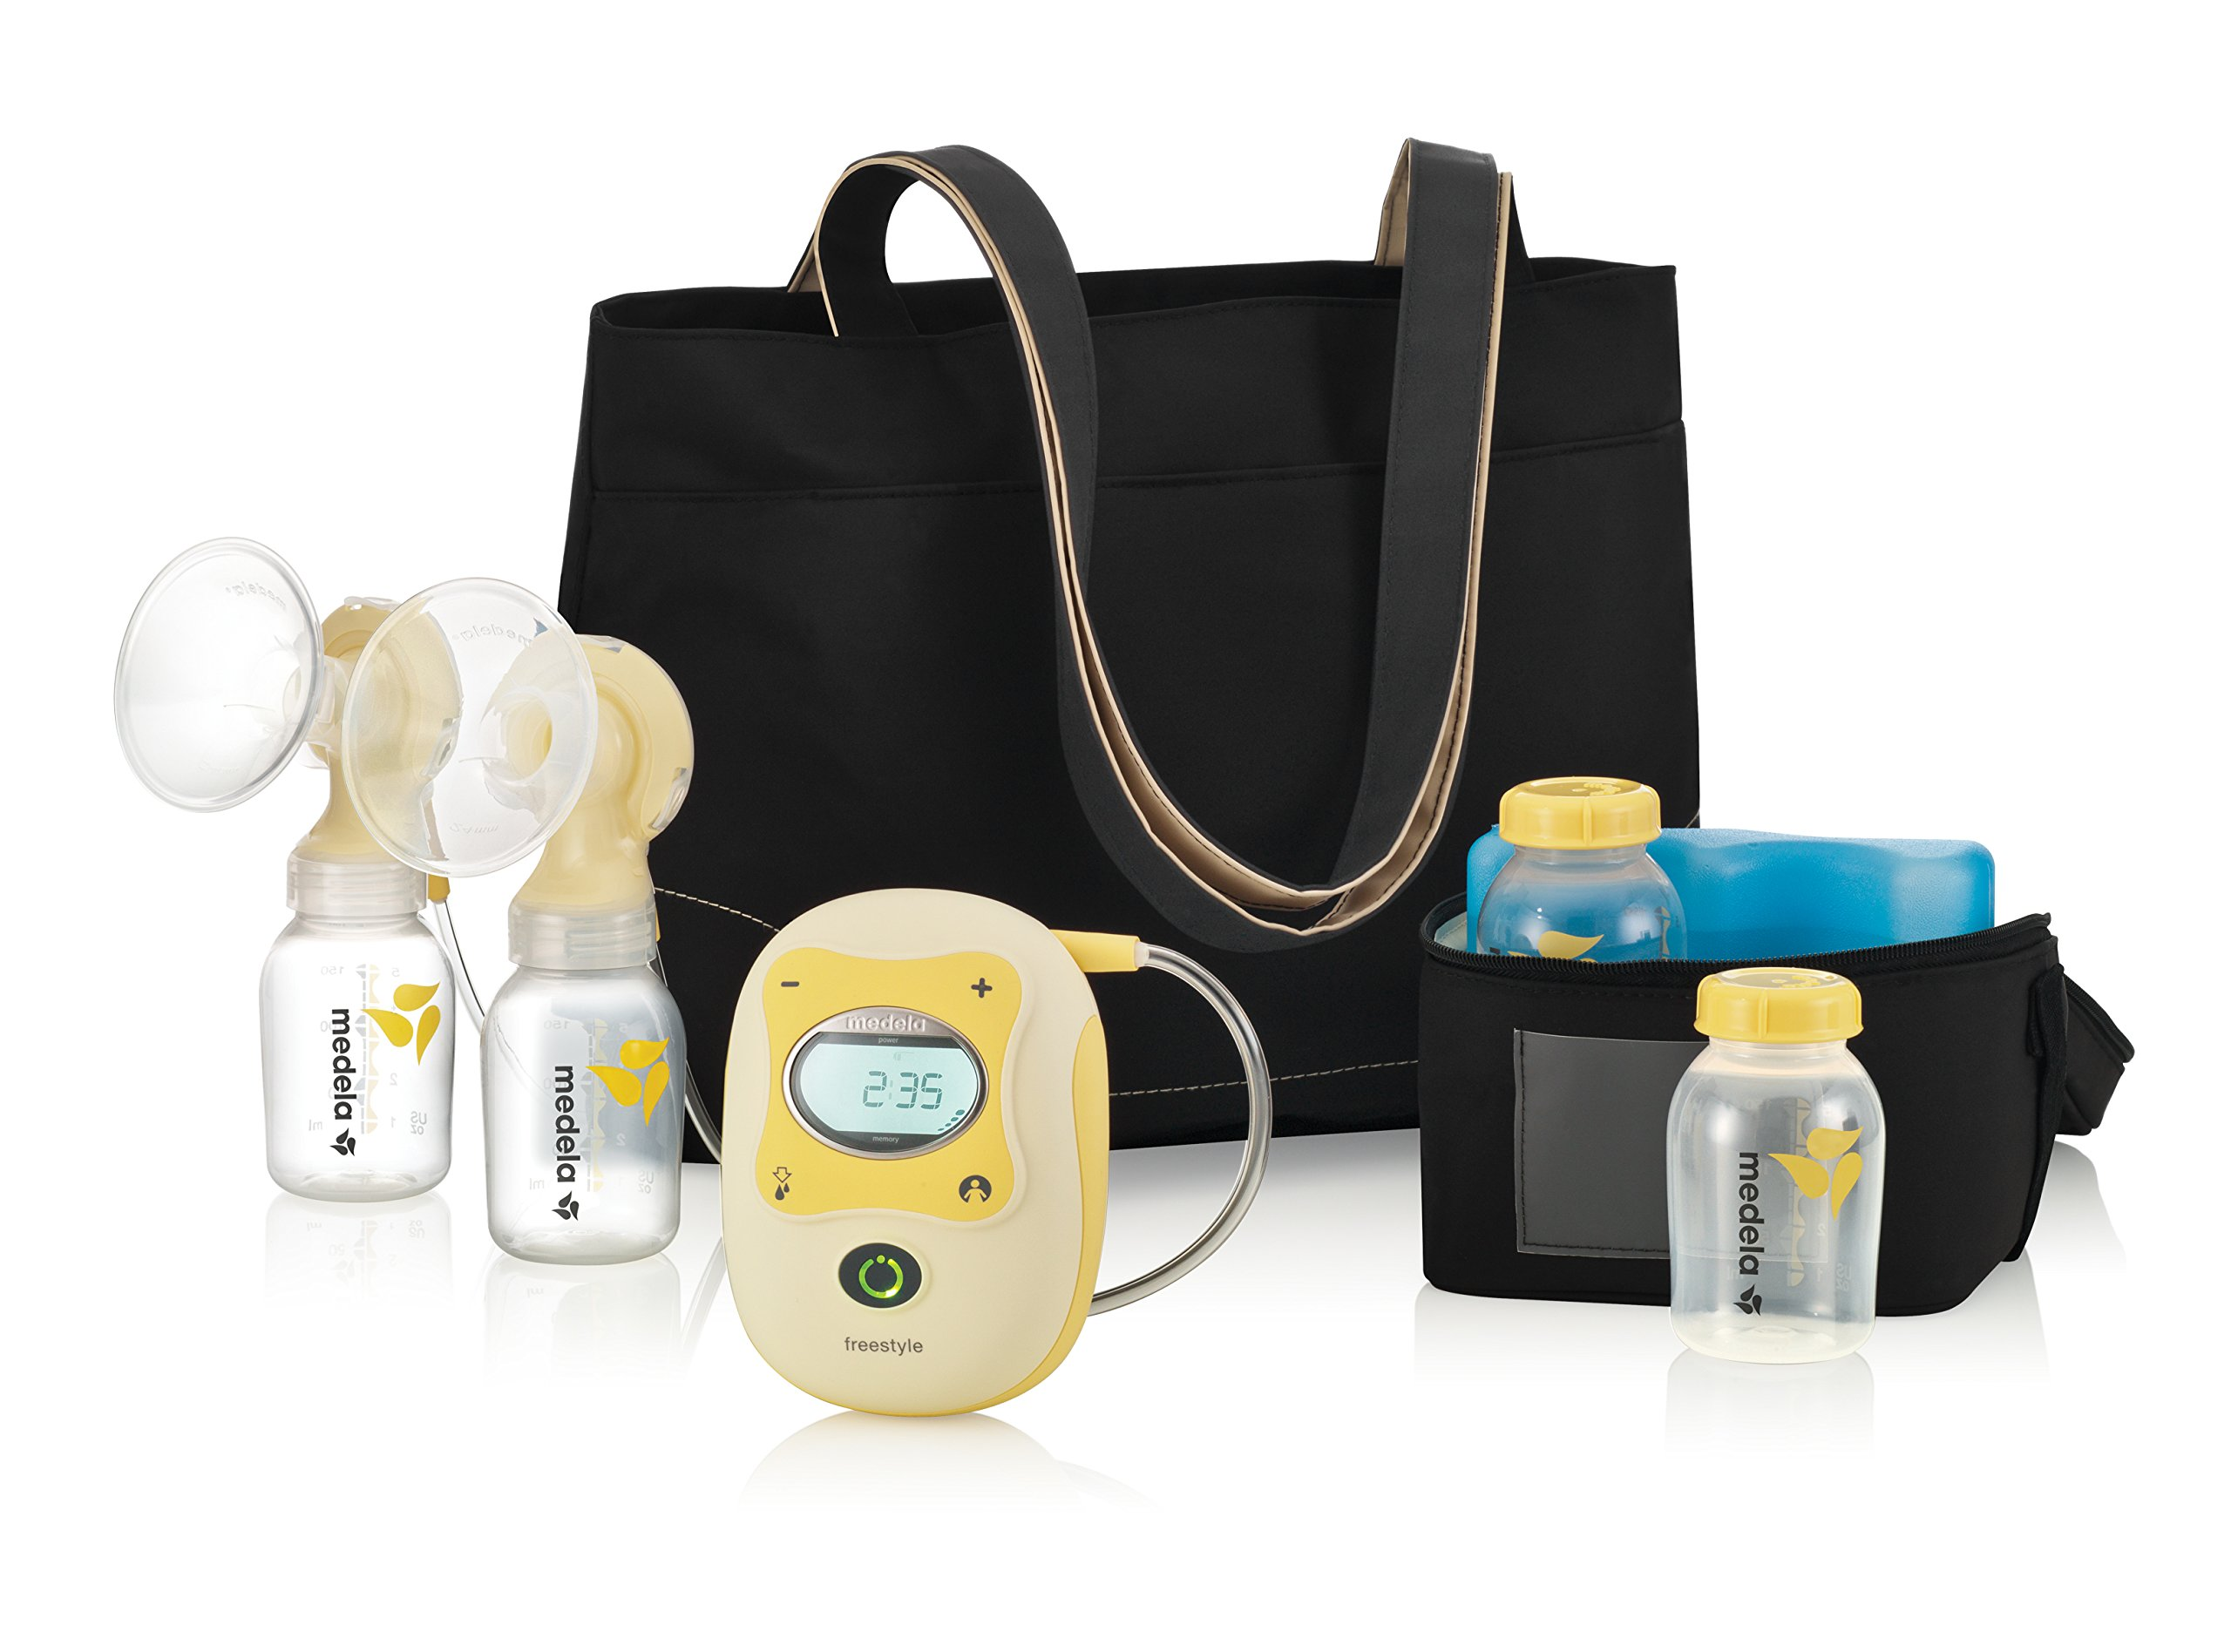 Medela Freestyle Double Electric Breast Pump, Hands Free Breastpump, Rechargeable Battery, Lightweight, Digital Display with Memory Button, Lactation Support by Medela